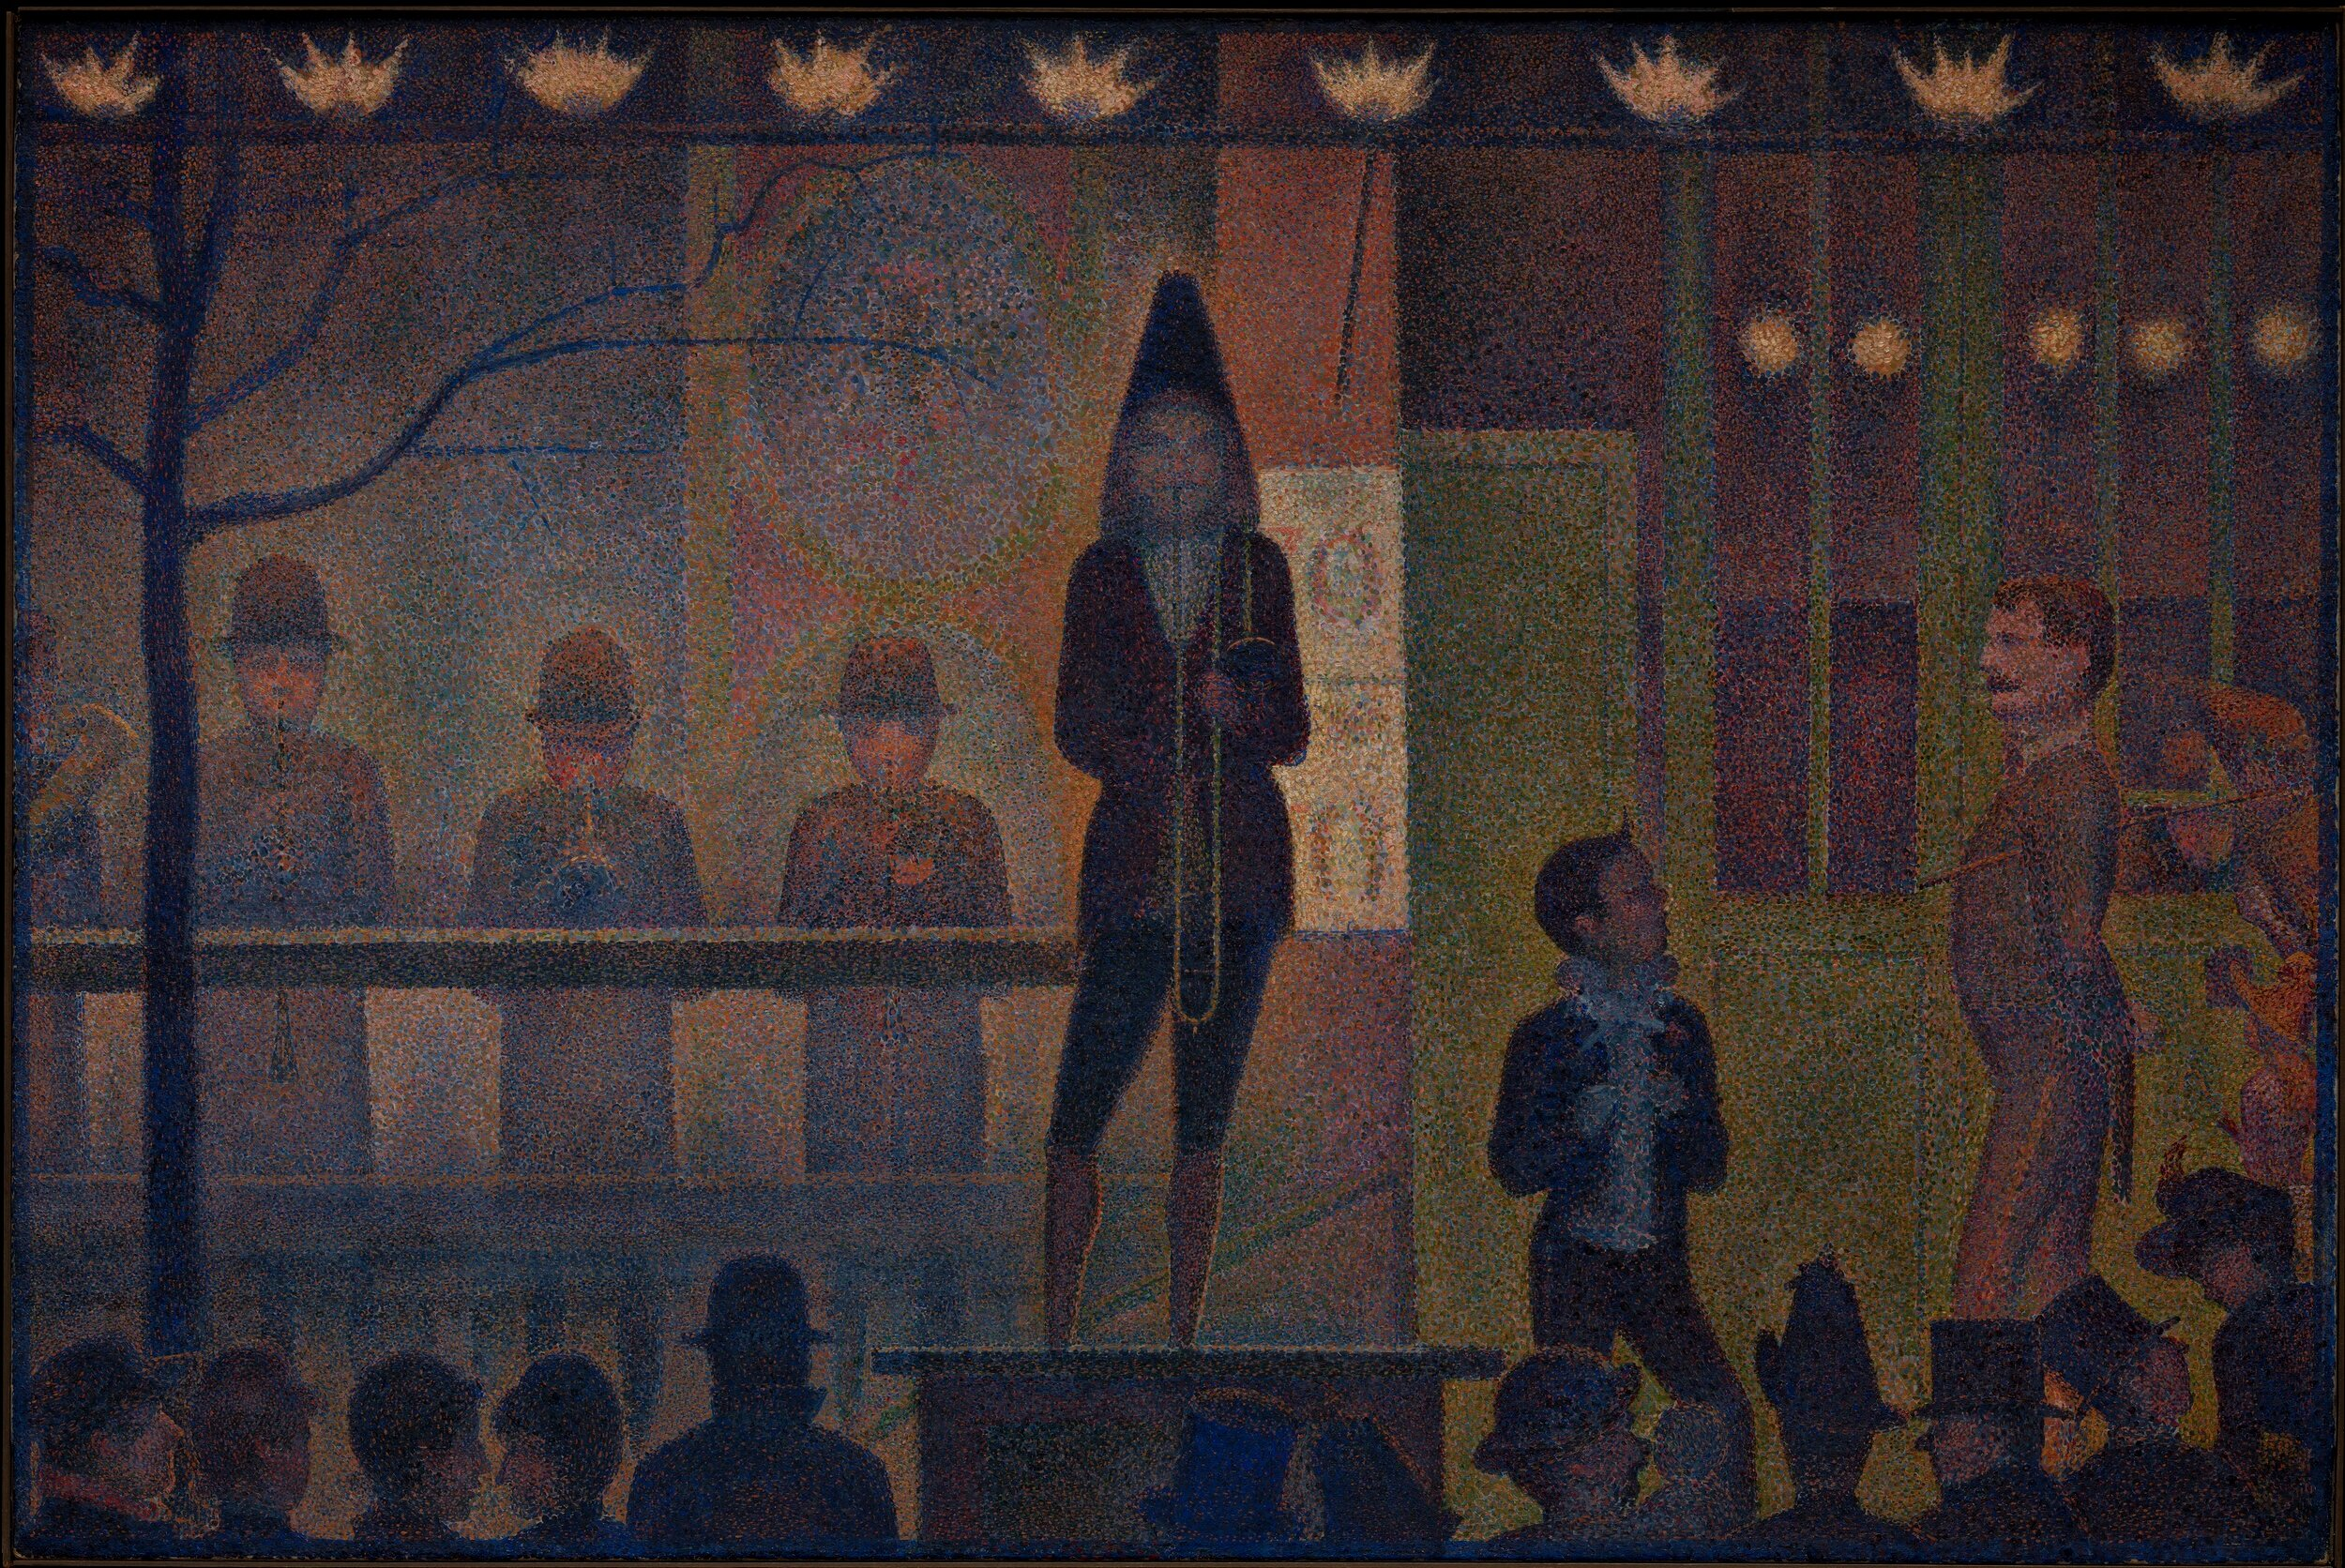 """""""Originality depends on the character of the drawing and the vision peculiar to each artist."""" - -Georges Seurat"""